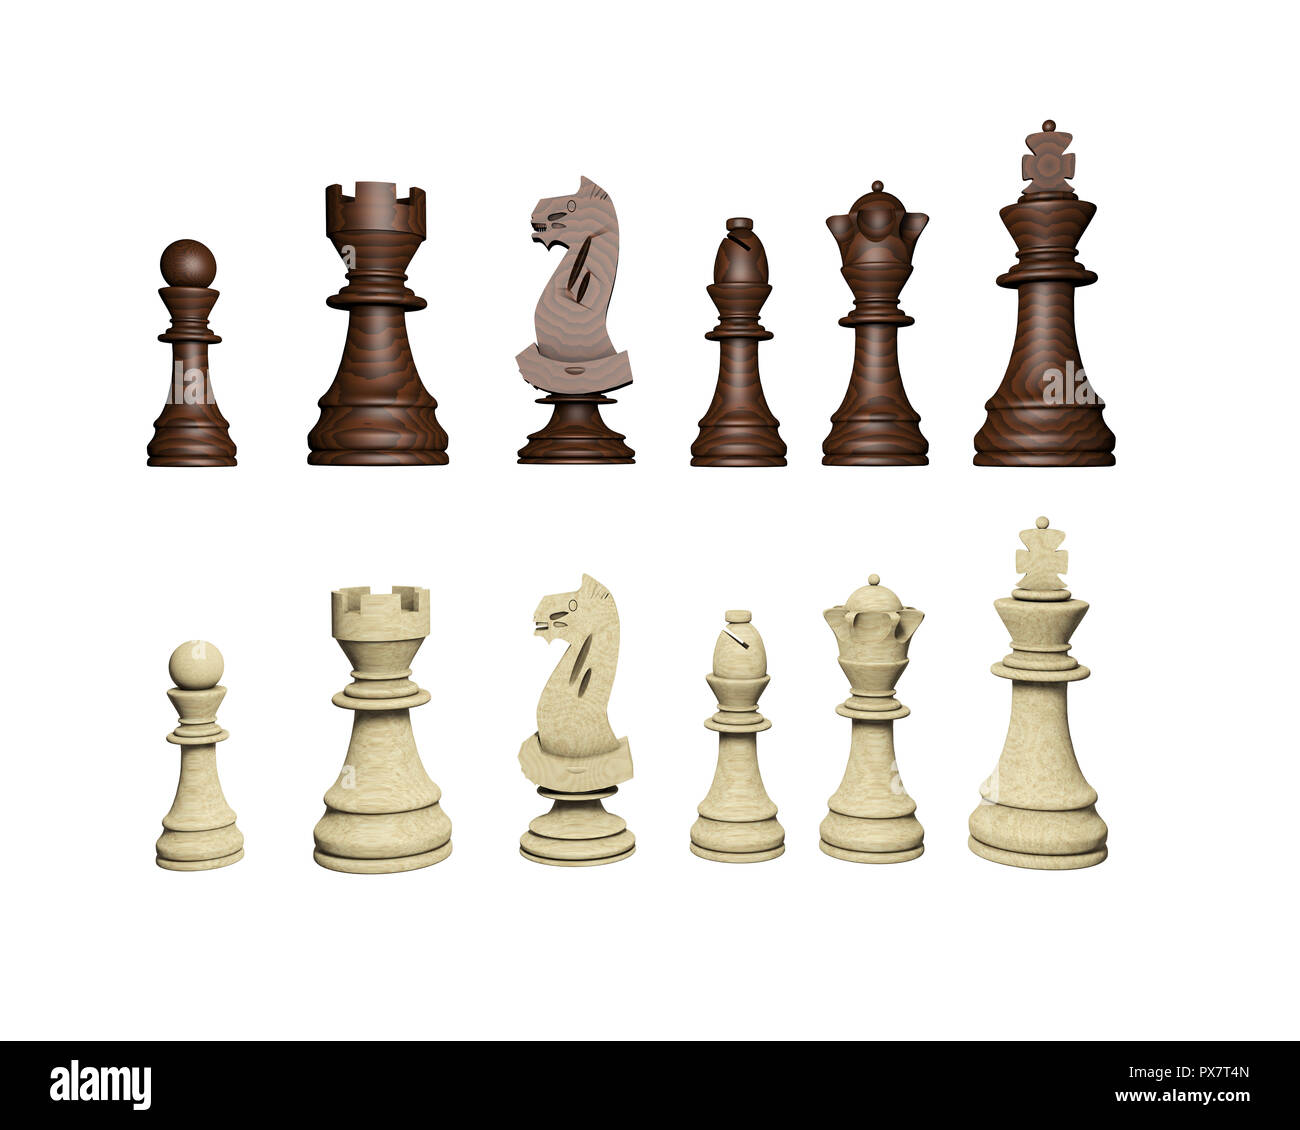 3d. chess game pieces, figures. Chess pieces standing together - Stock Image